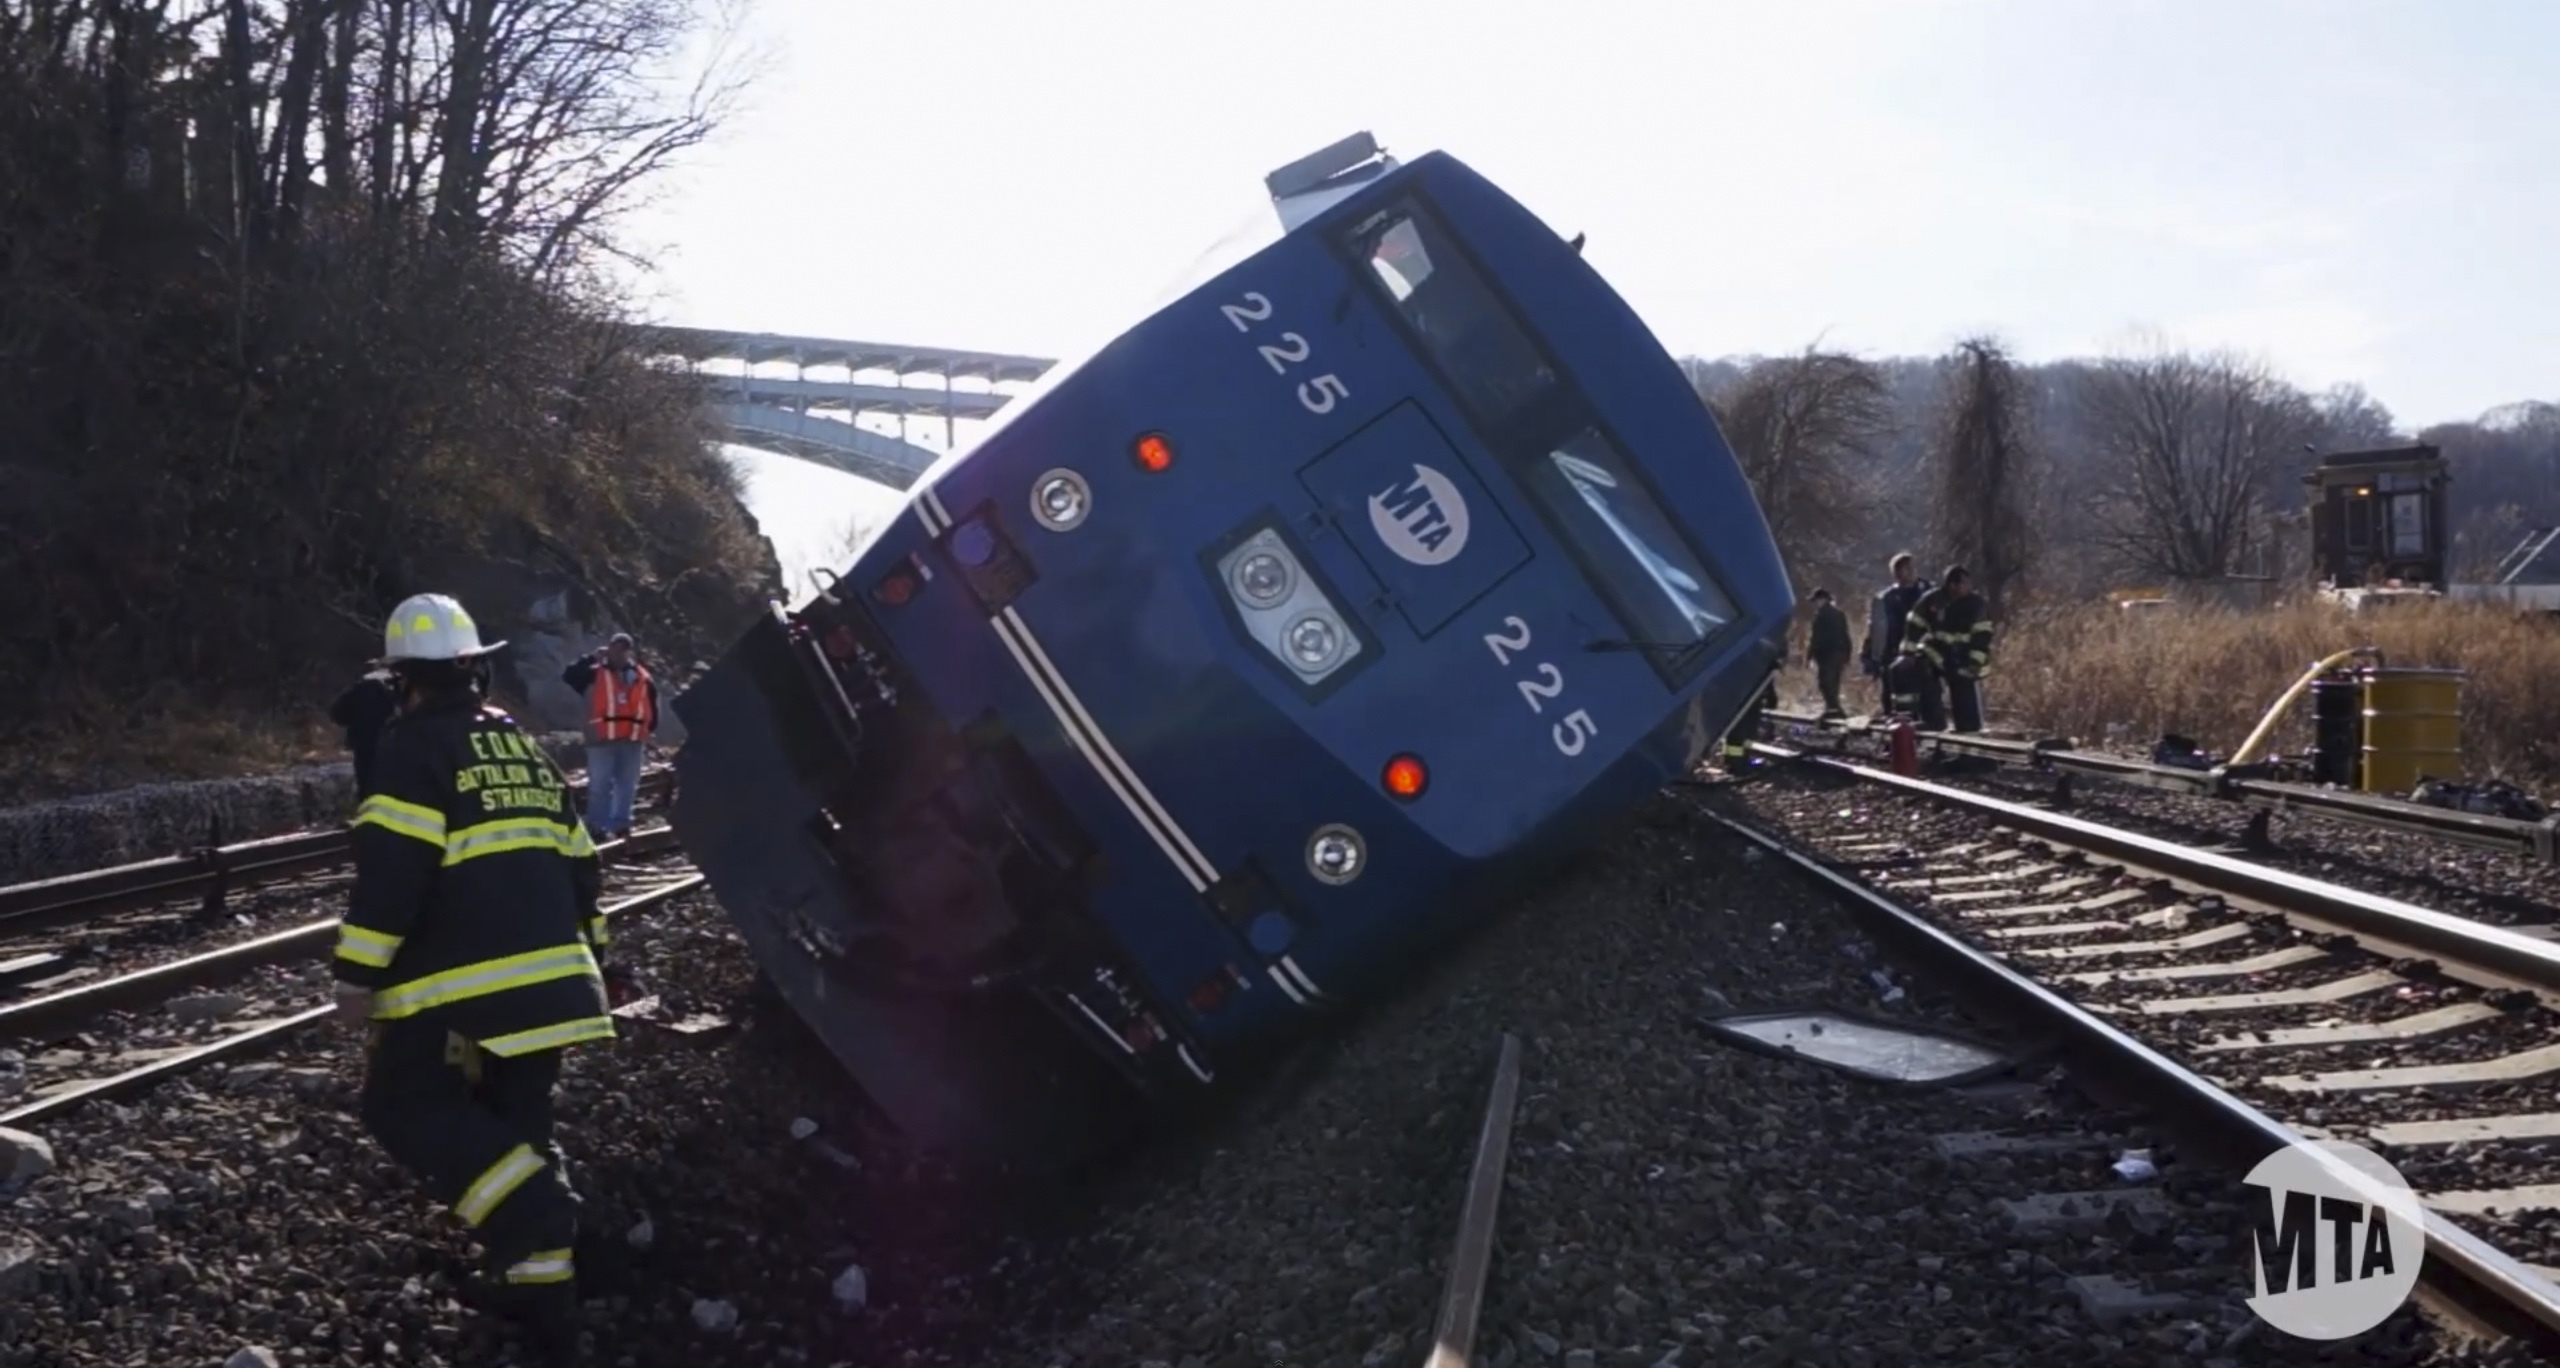 Analysis: Two Factors Key To Lawsuits Over New York Train Crash